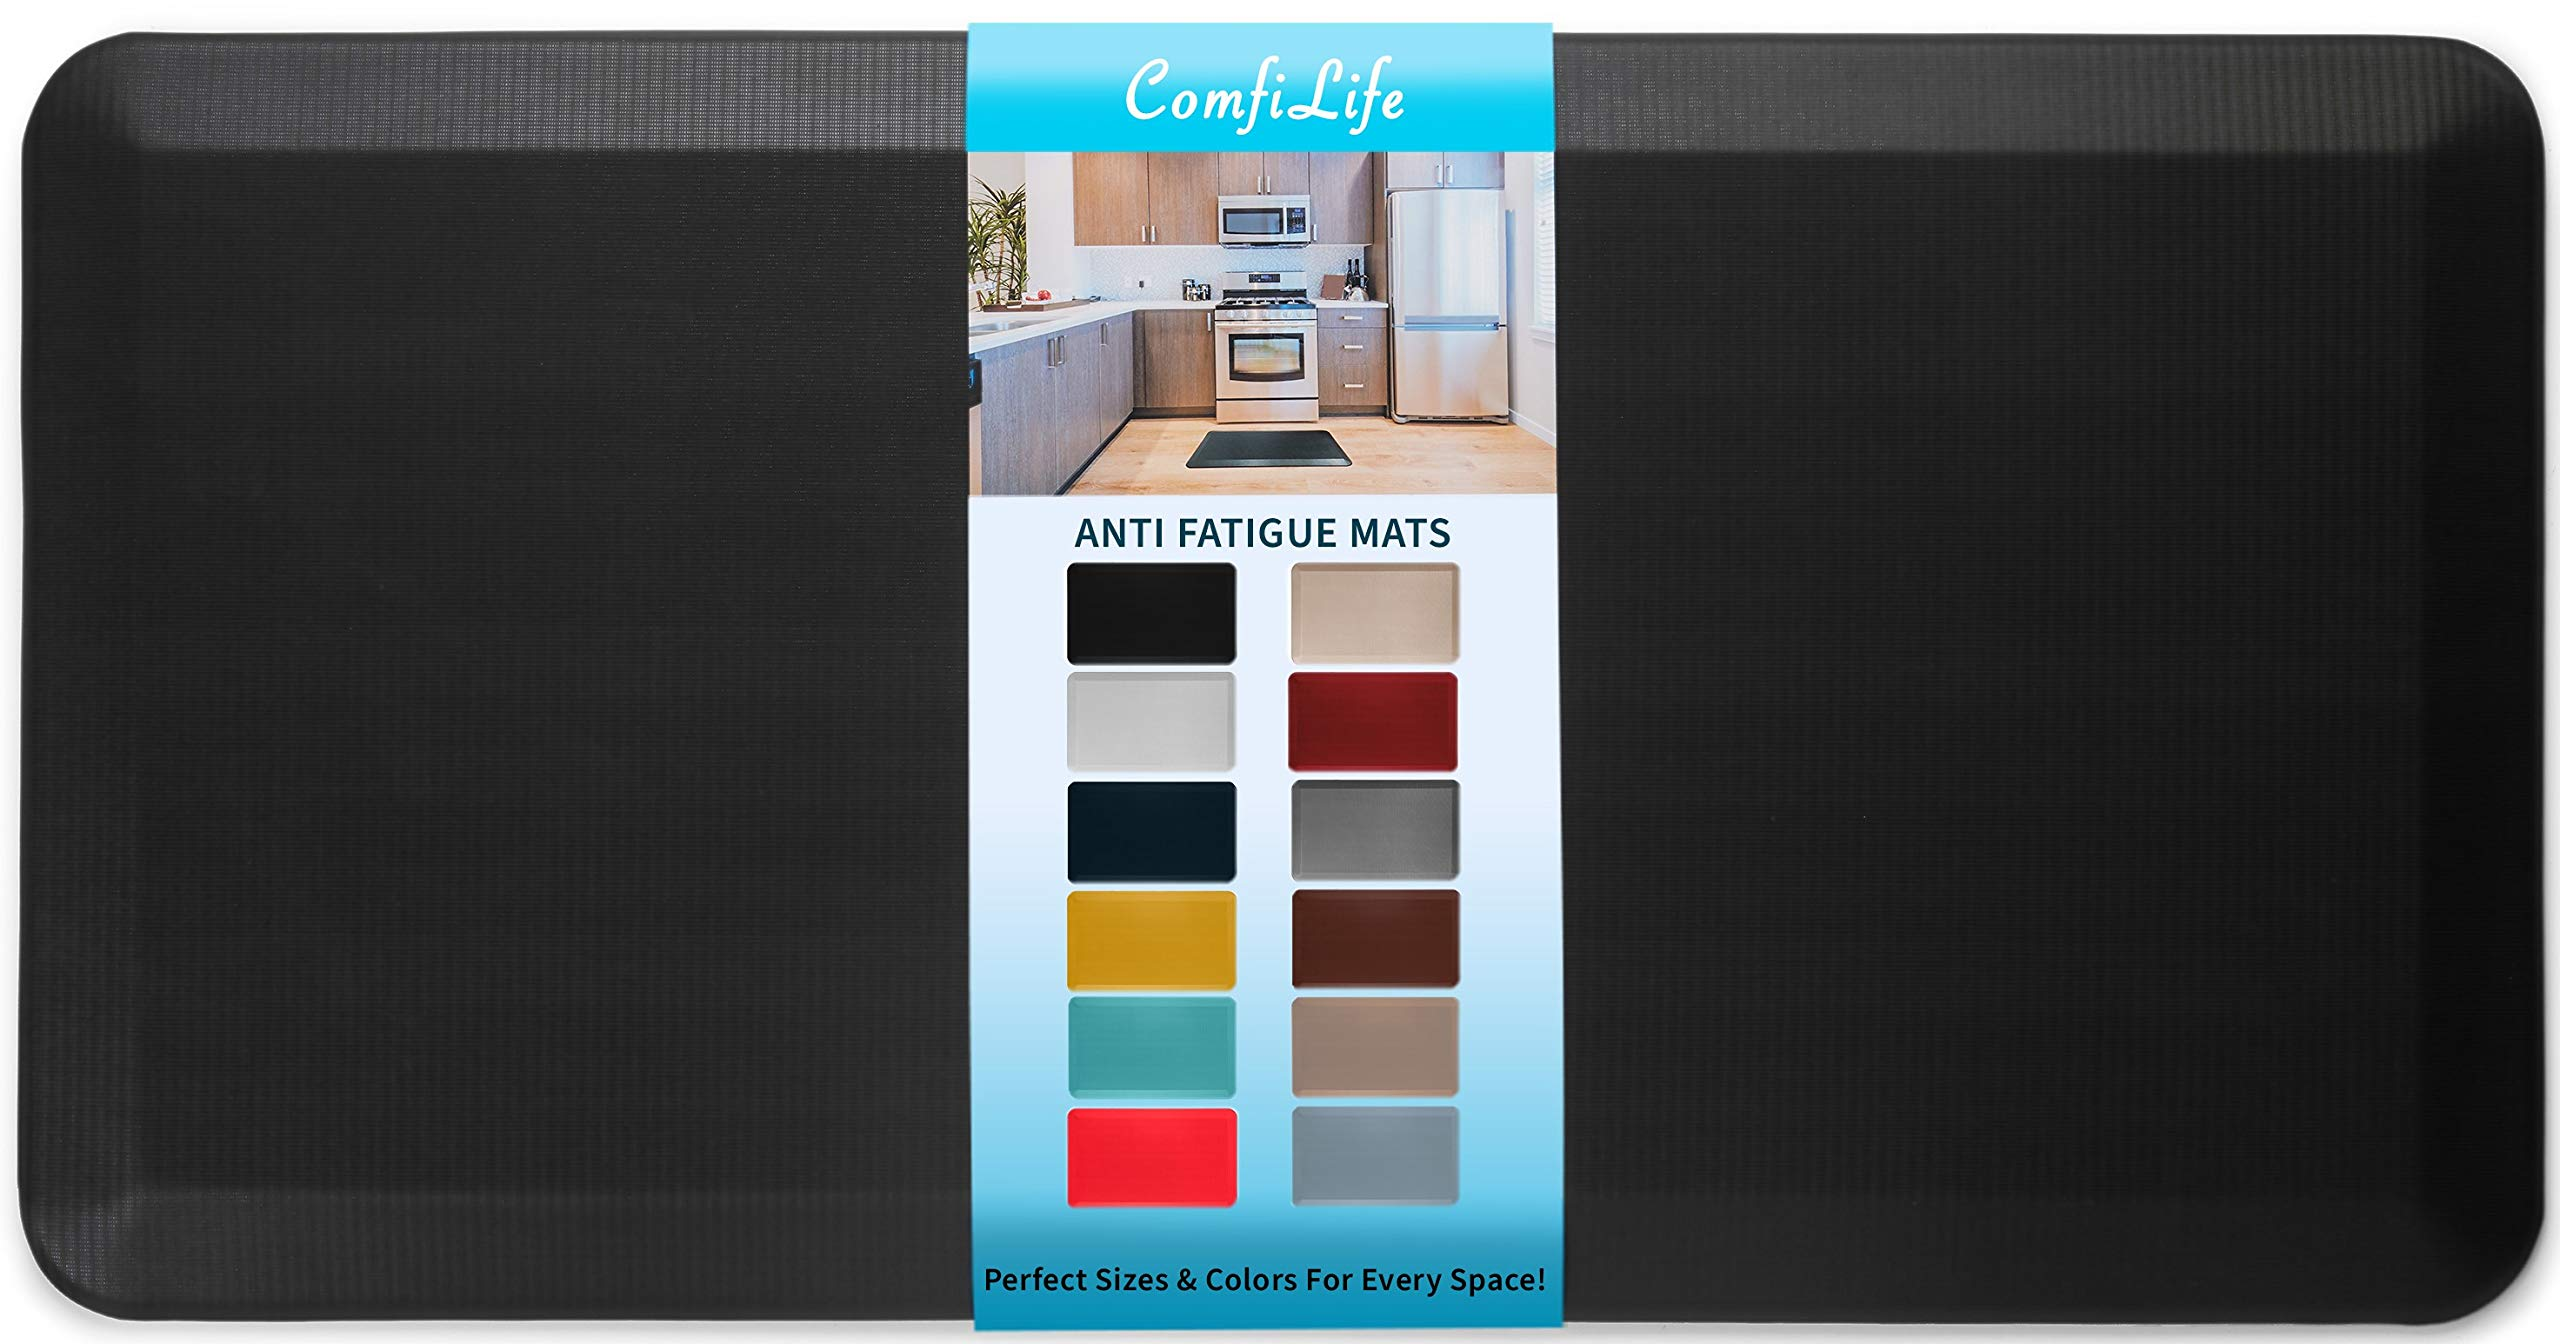 "ComfiLife Anti Fatigue Floor Mat – 3/4 Inch Thick Perfect Kitchen Mat, Standing Desk Mat – Comfort at Home, Office, Garage – Durable – Stain Resistant – Non-Slip Bottom (20"" x 39"", Black)"